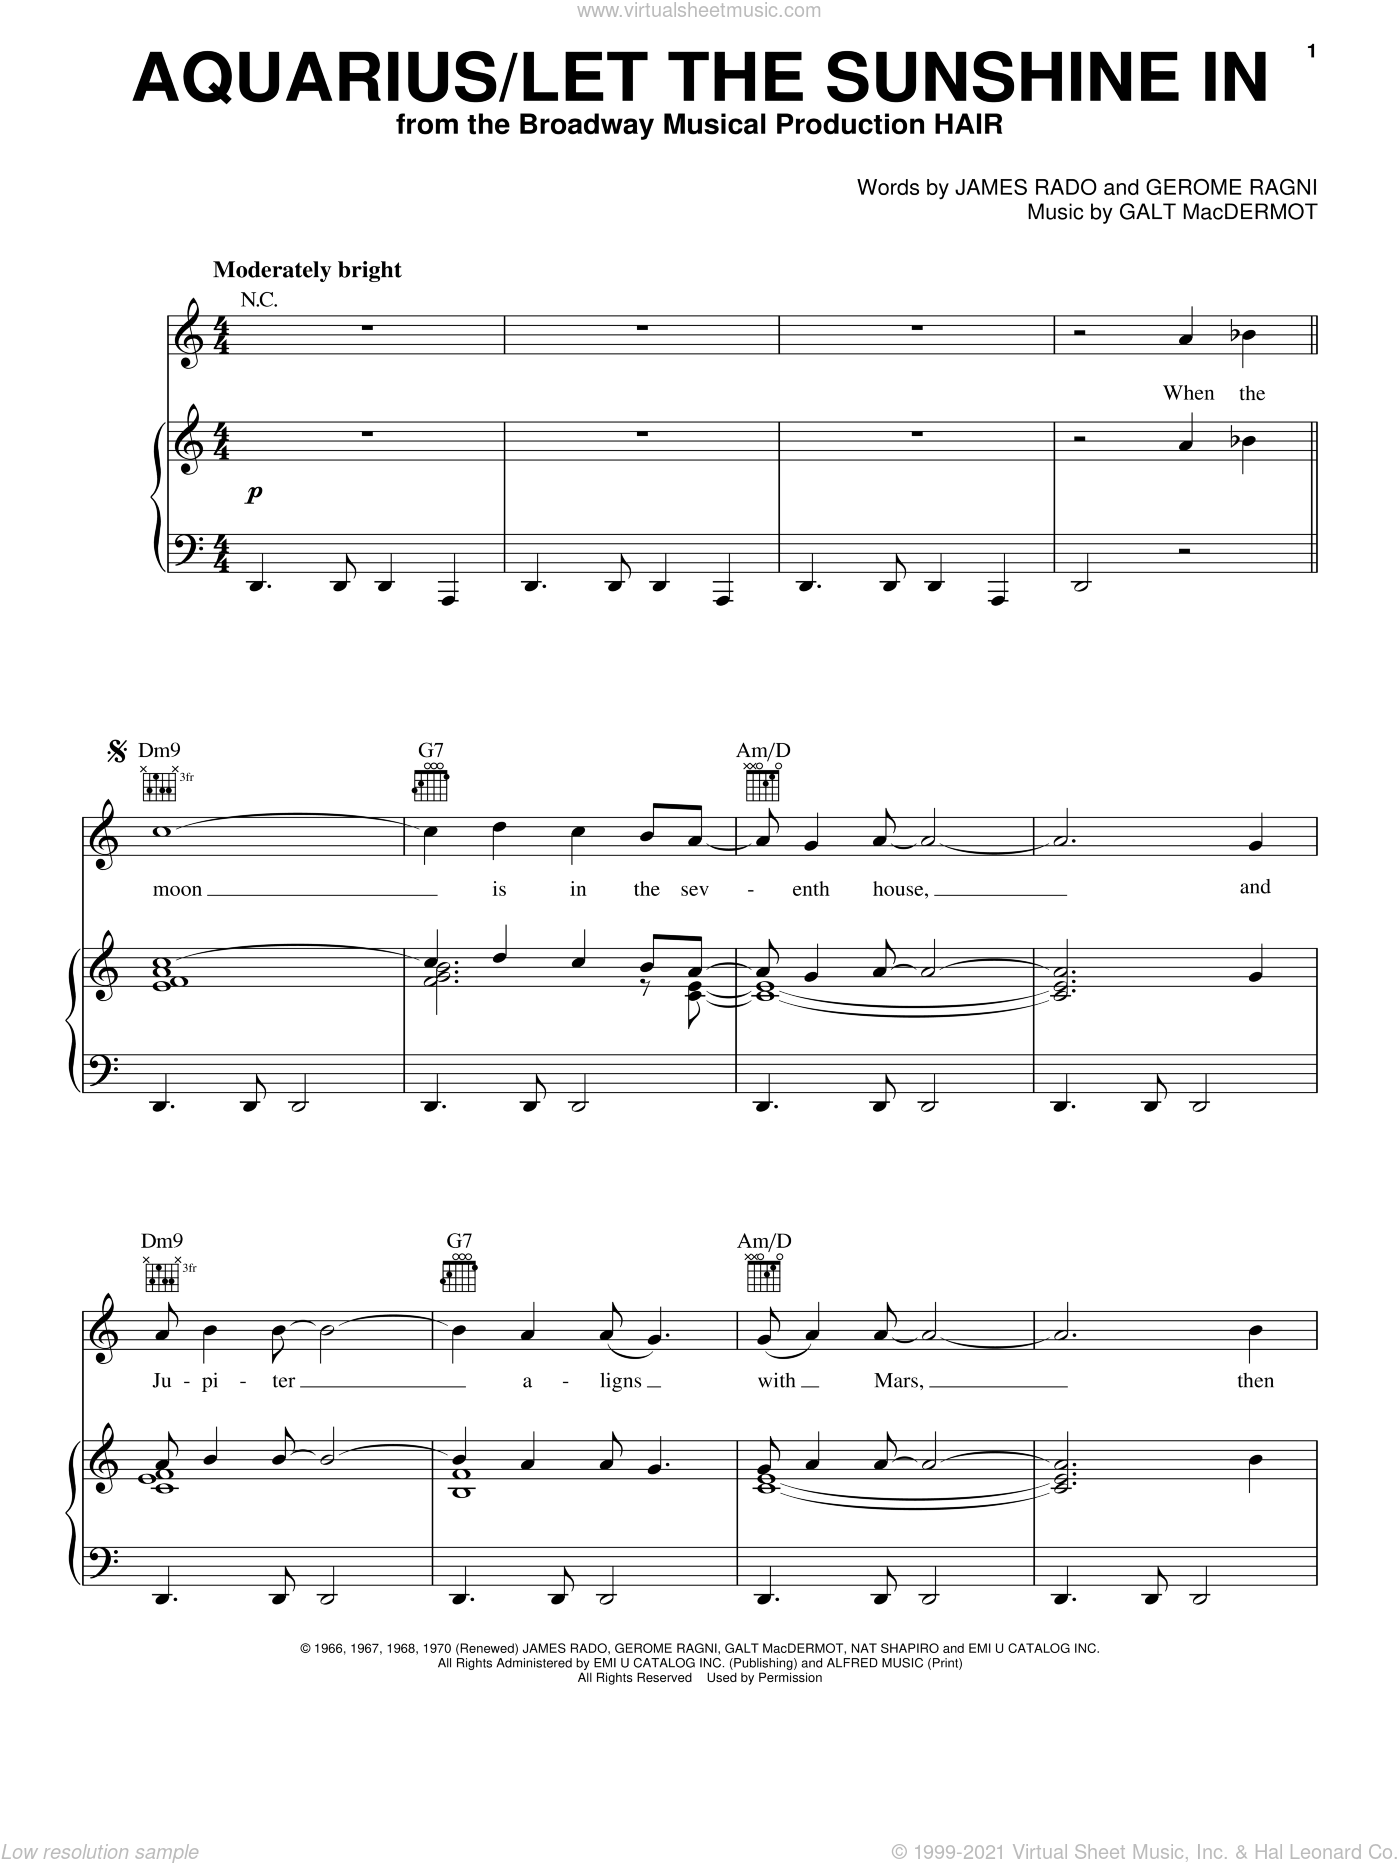 Aquarius/Let The Sunshine In sheet music for voice, piano or guitar by The Fifth Dimension, Galt MacDermot, Gerome Ragni and James Rado, intermediate skill level